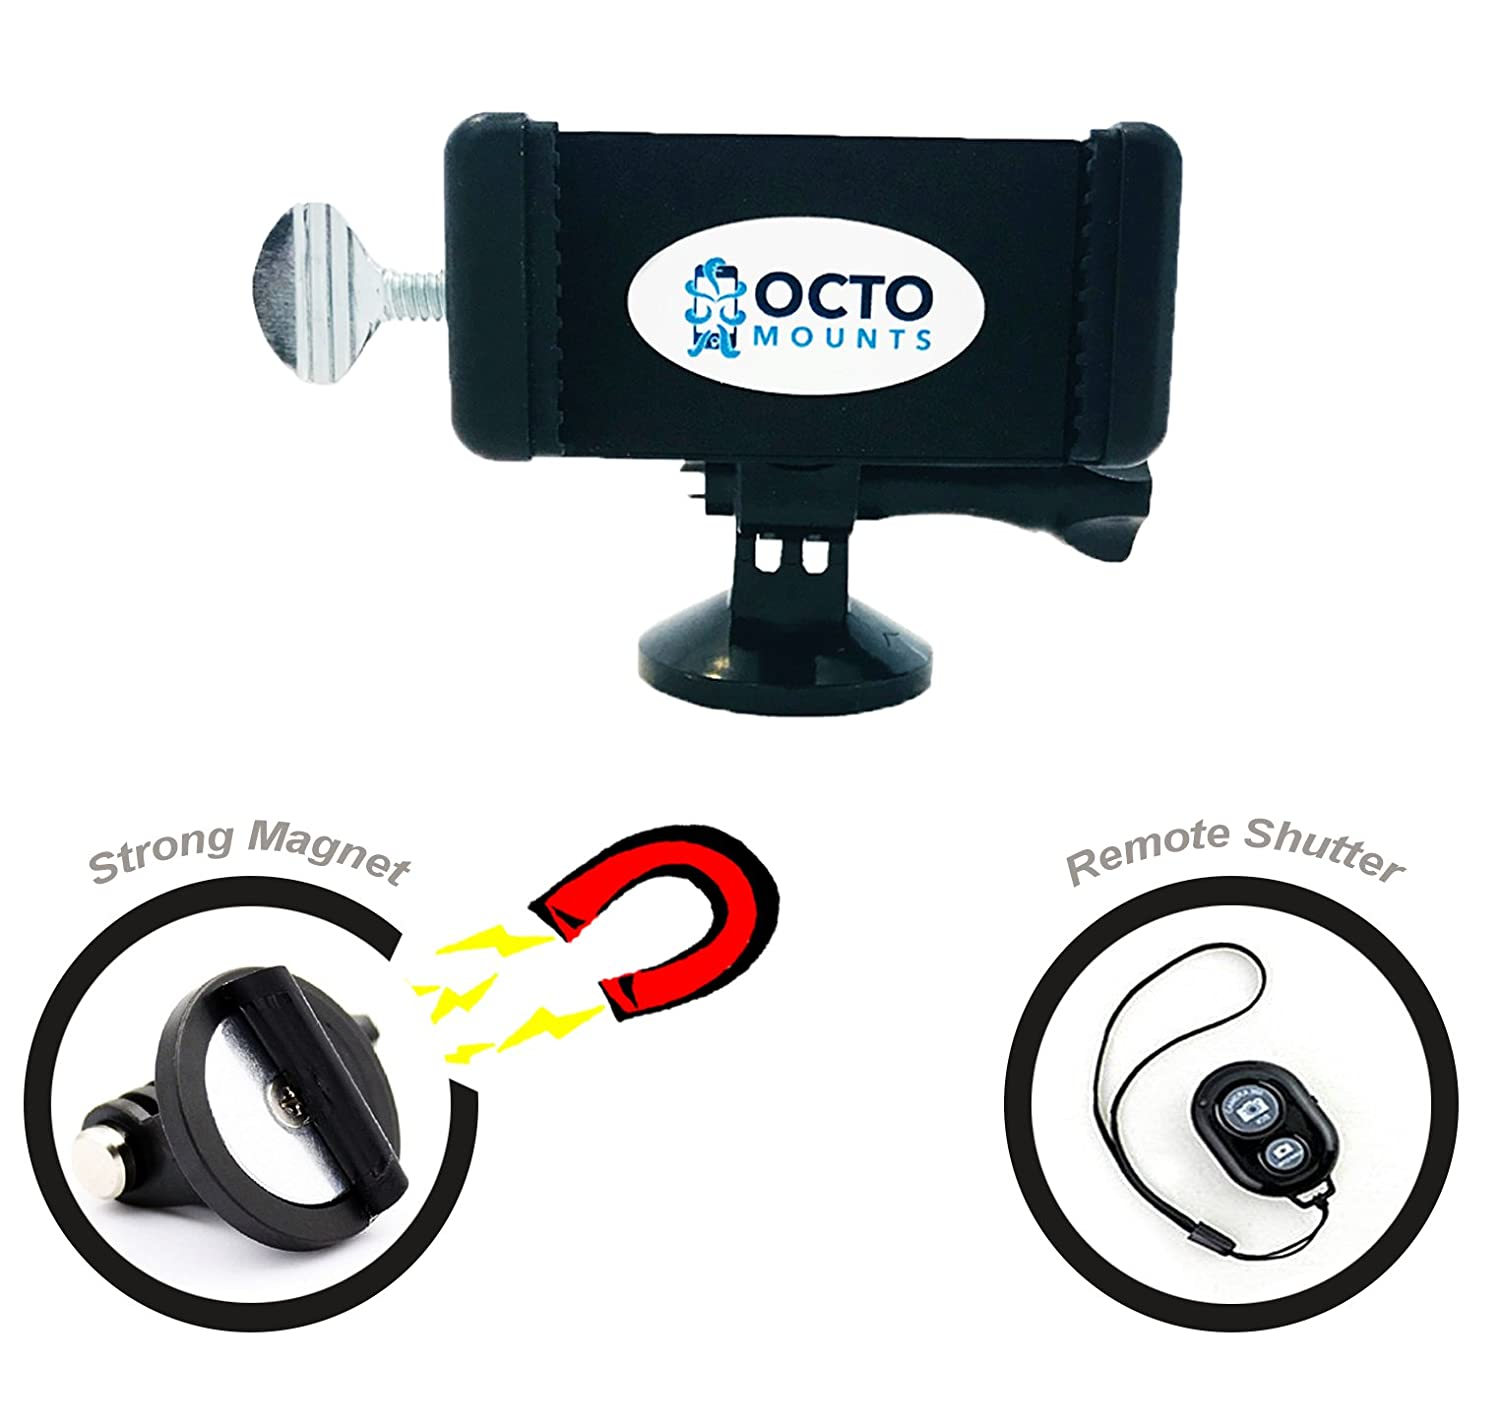 OCTO MOUNTS | Universal Smartphone Holder w/GoPro Style Mount Adapter and Magnet Tripod Mount. Includes Remote Shutter. Connect Your Cellphone to Any GoPro Accessory or Use as a Tripod on Metal.